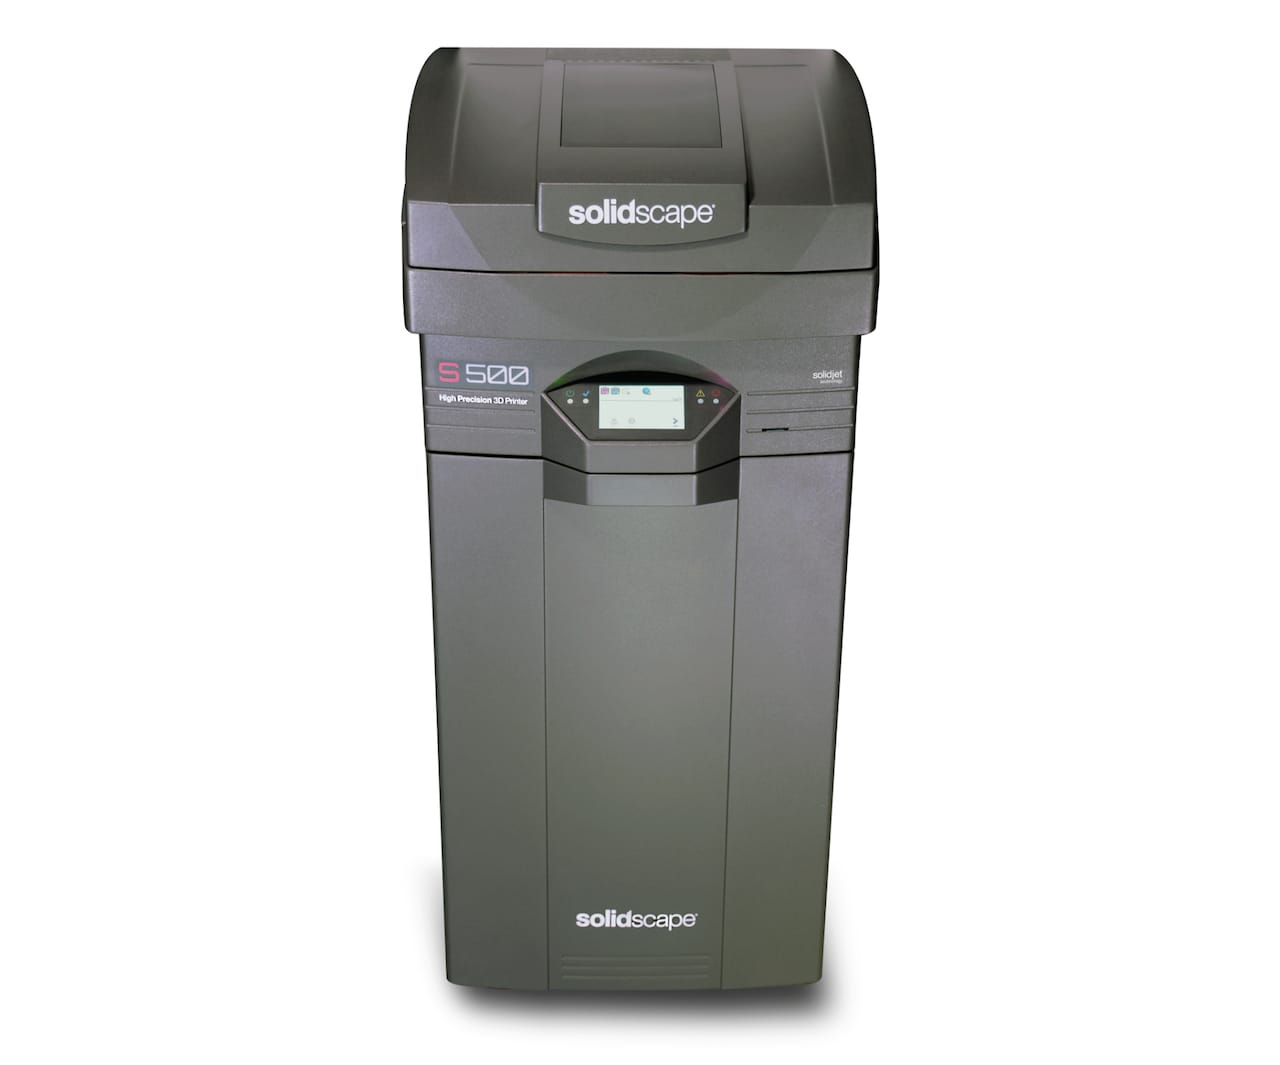 The Solidscape S500 wax 3D printer for industrial metal casting